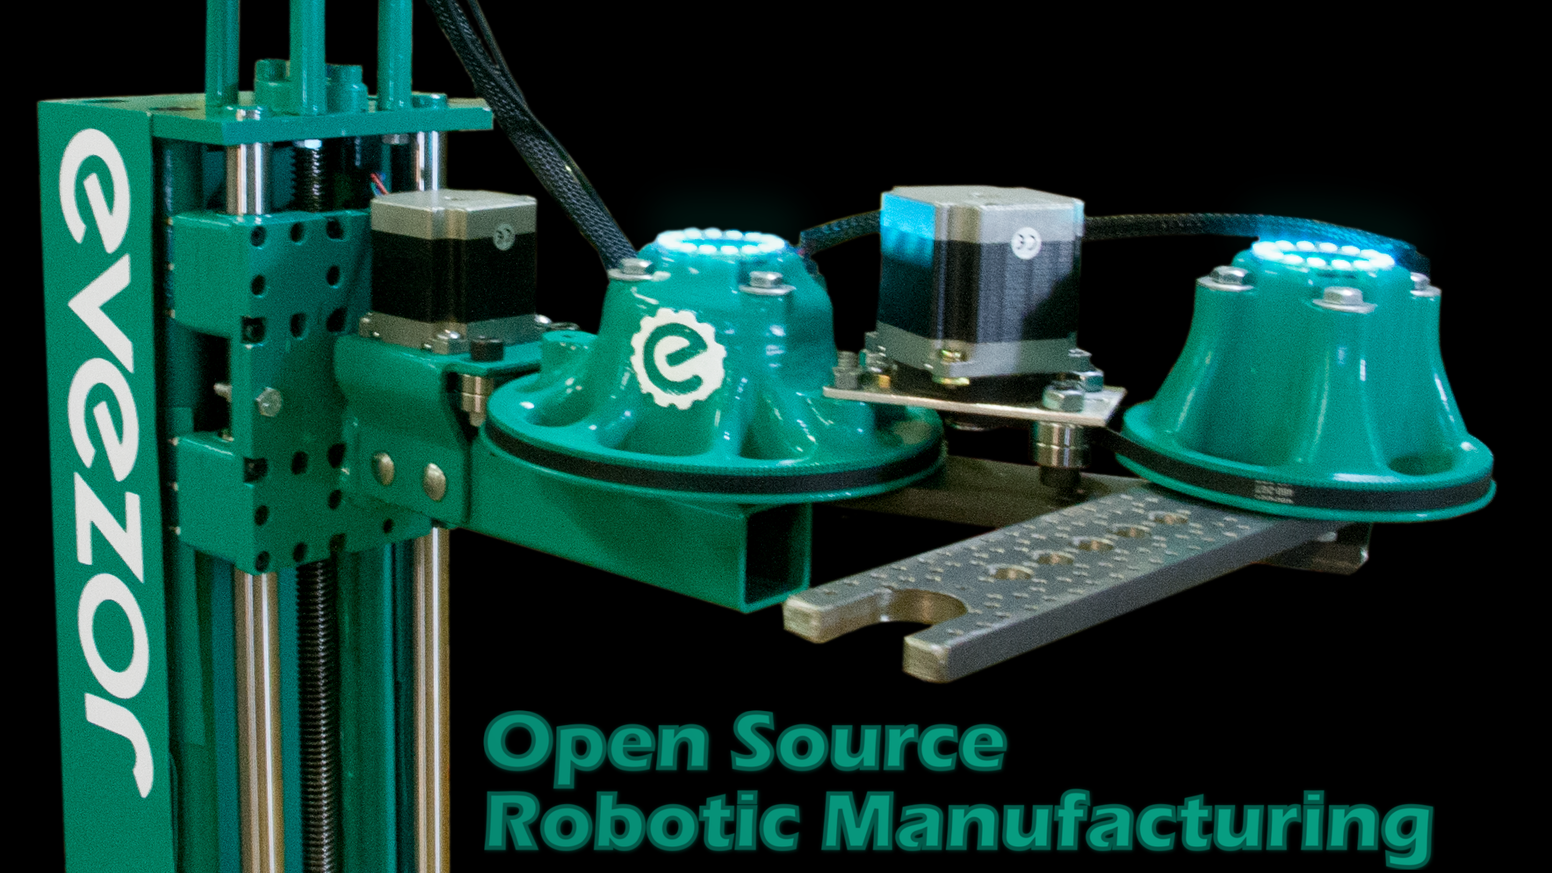 Another open source robotic arm project, might be